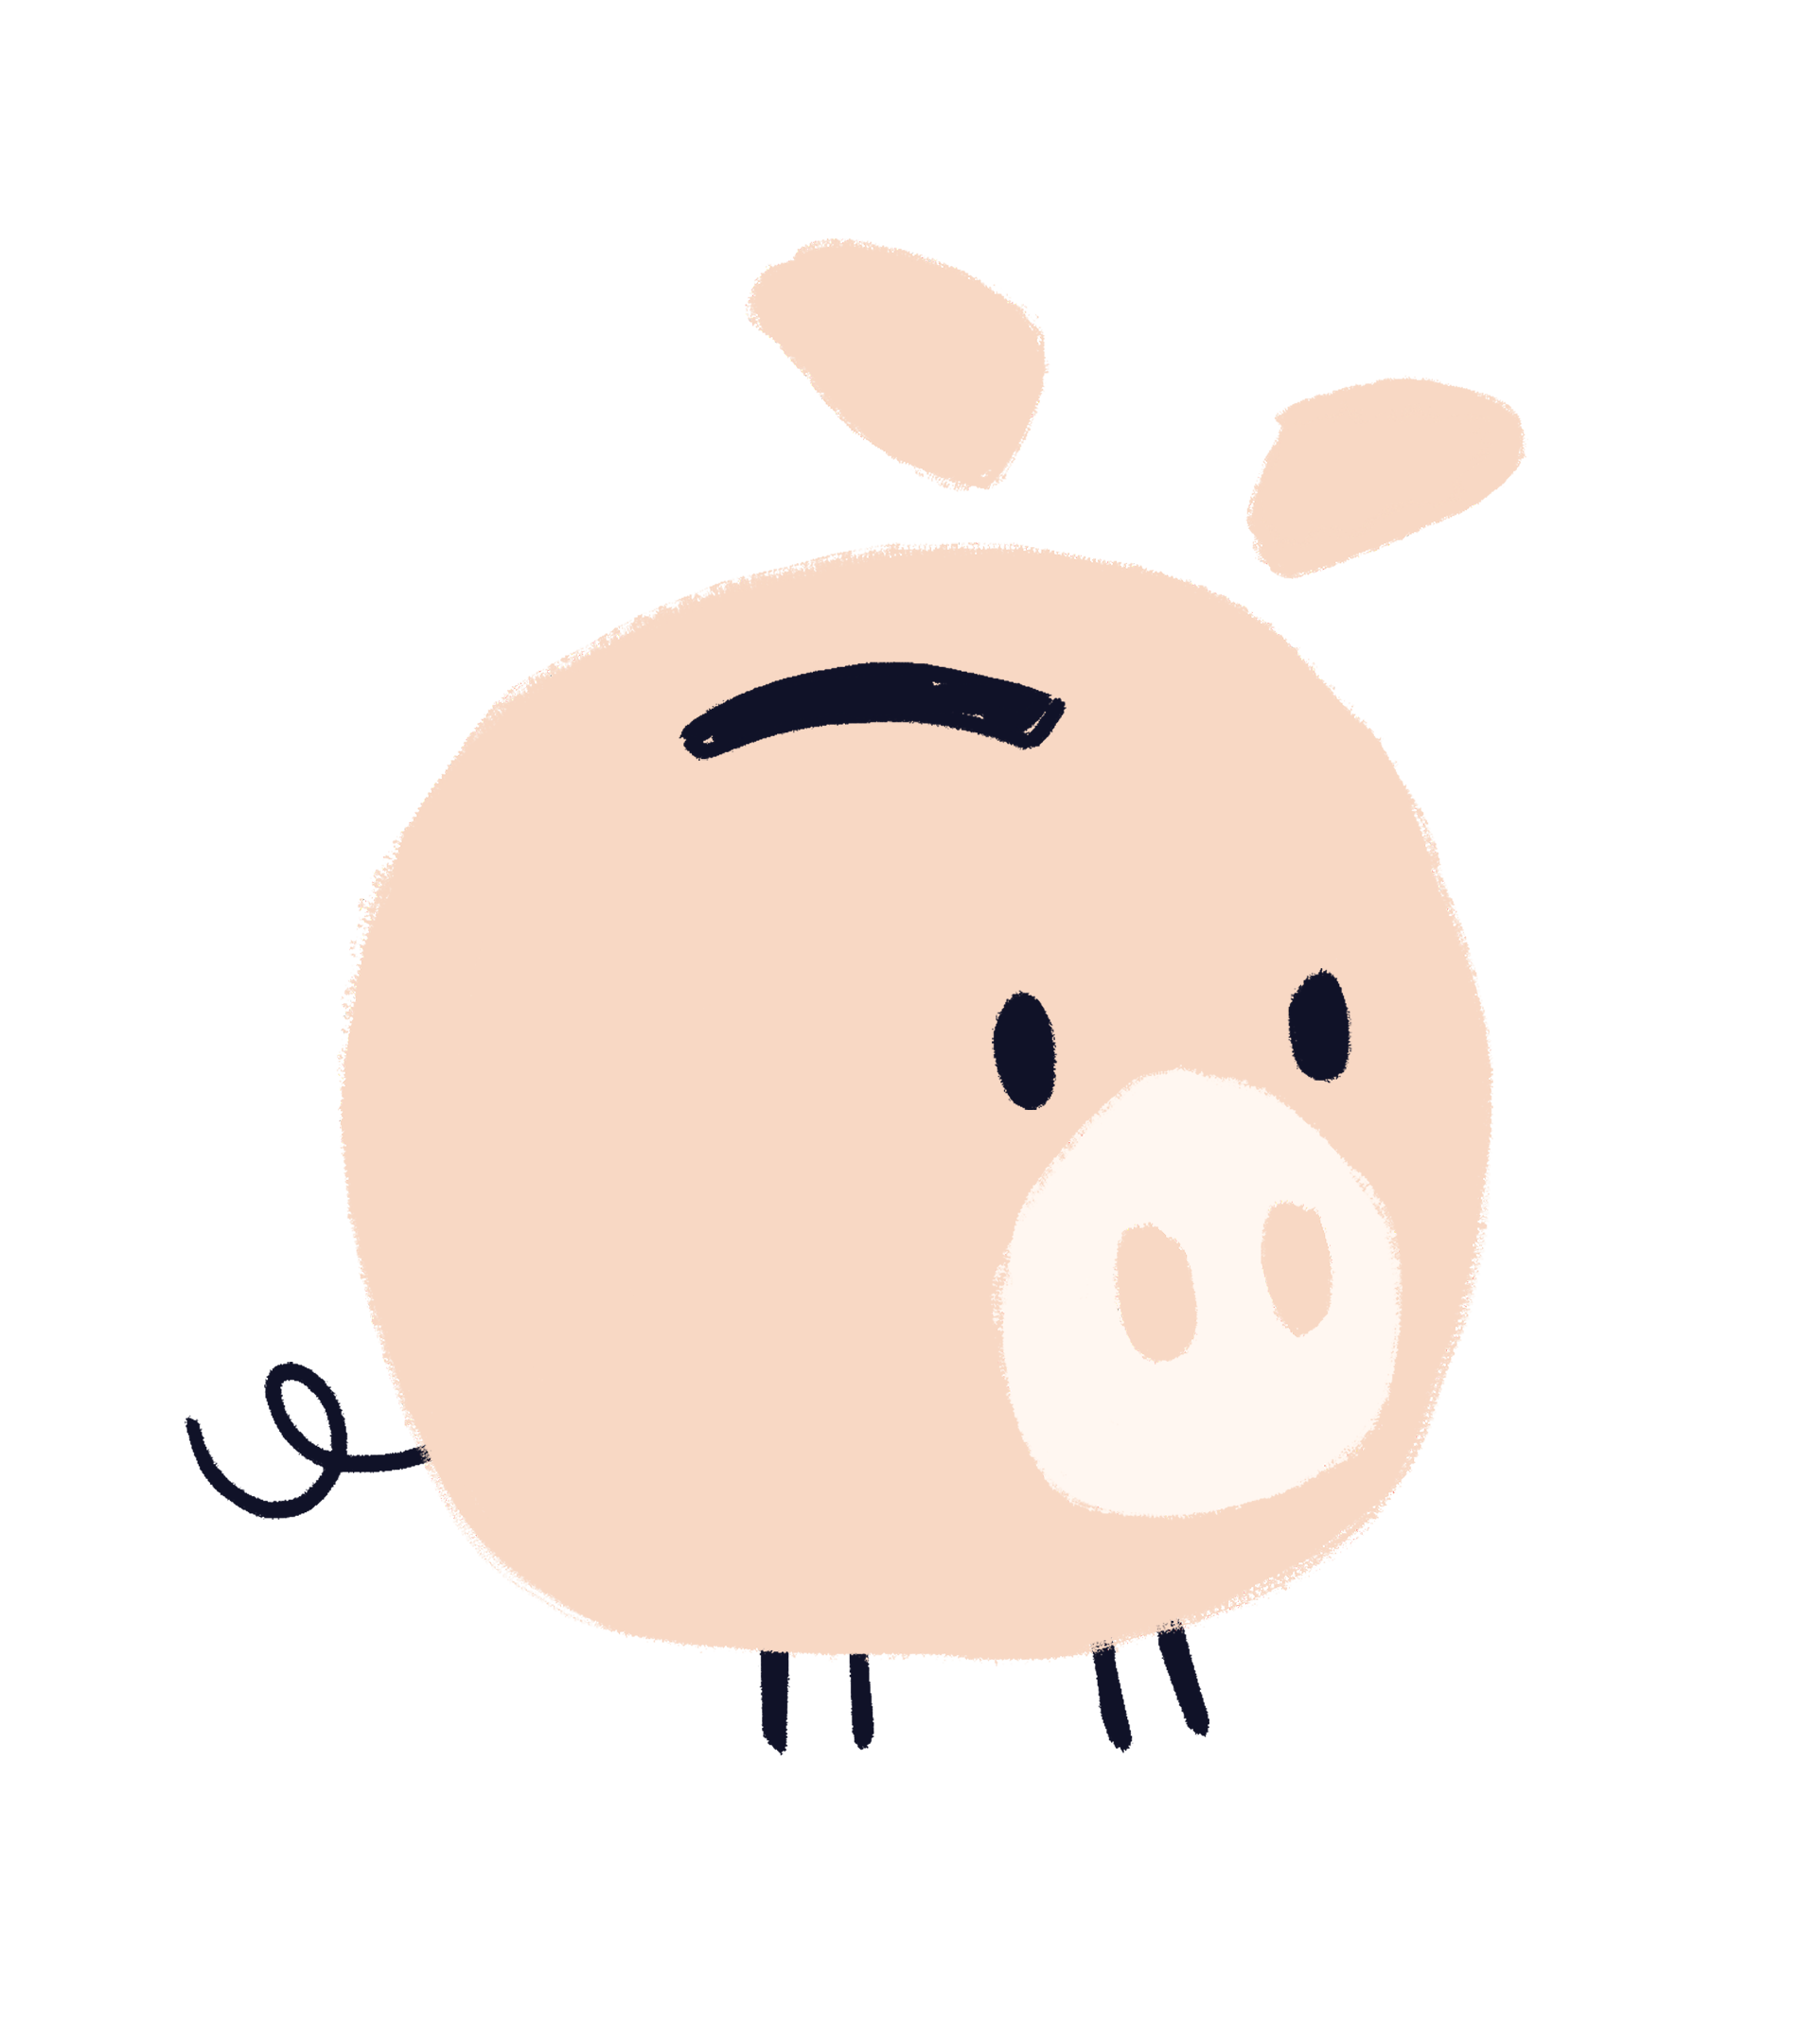 VP_Illustration_PiggyBank_v2.png